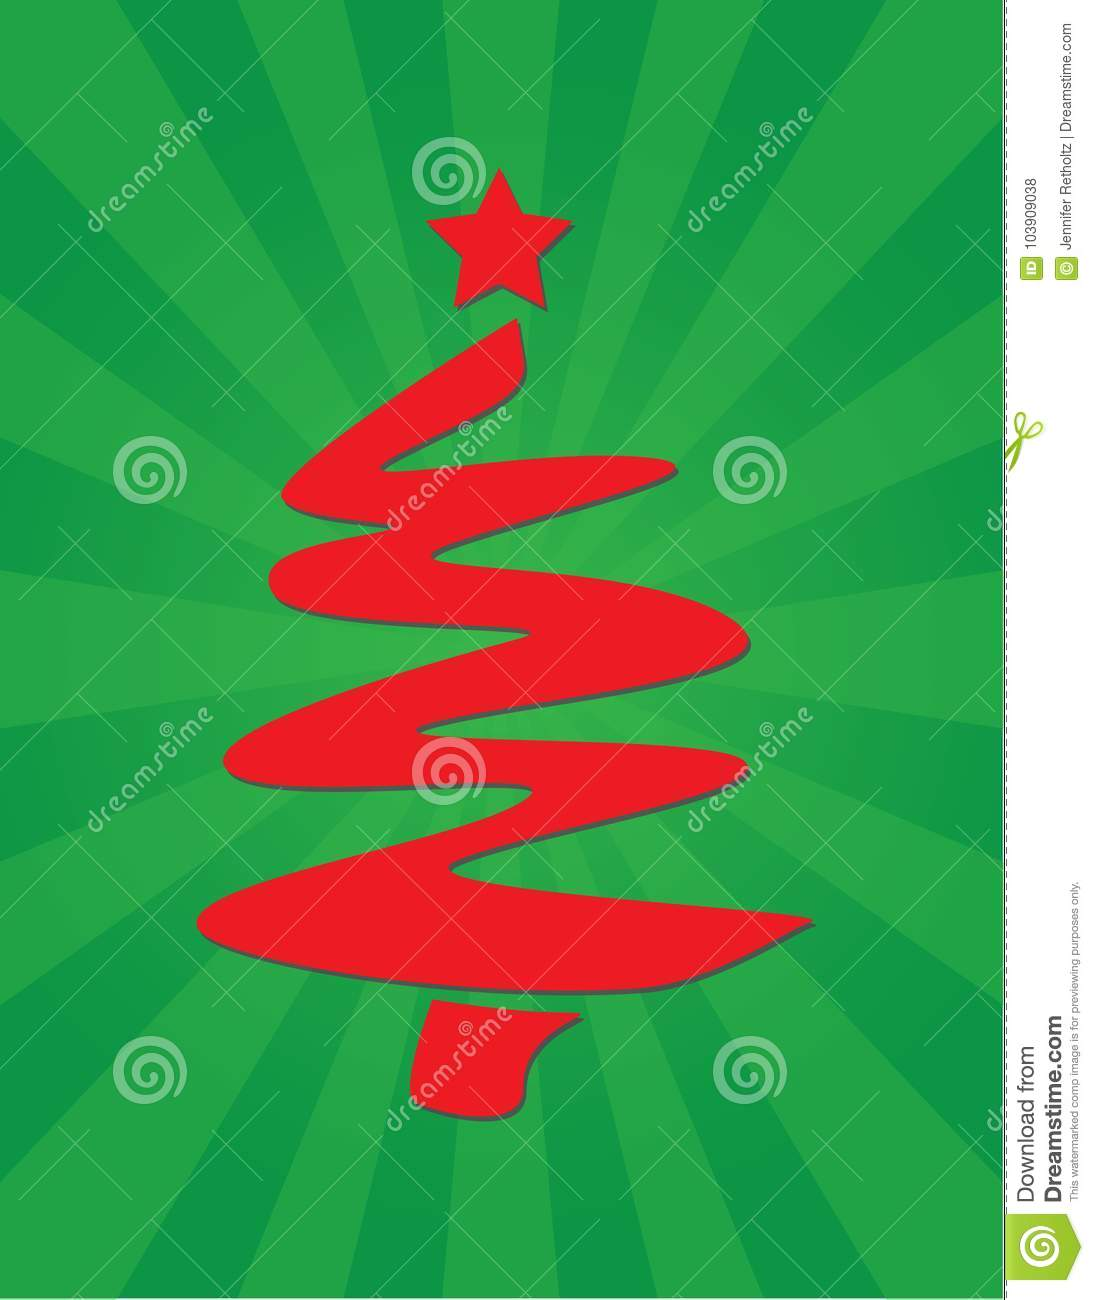 Festive Red And Green Christmas Tree Spiral Graphic Poster Stock ...